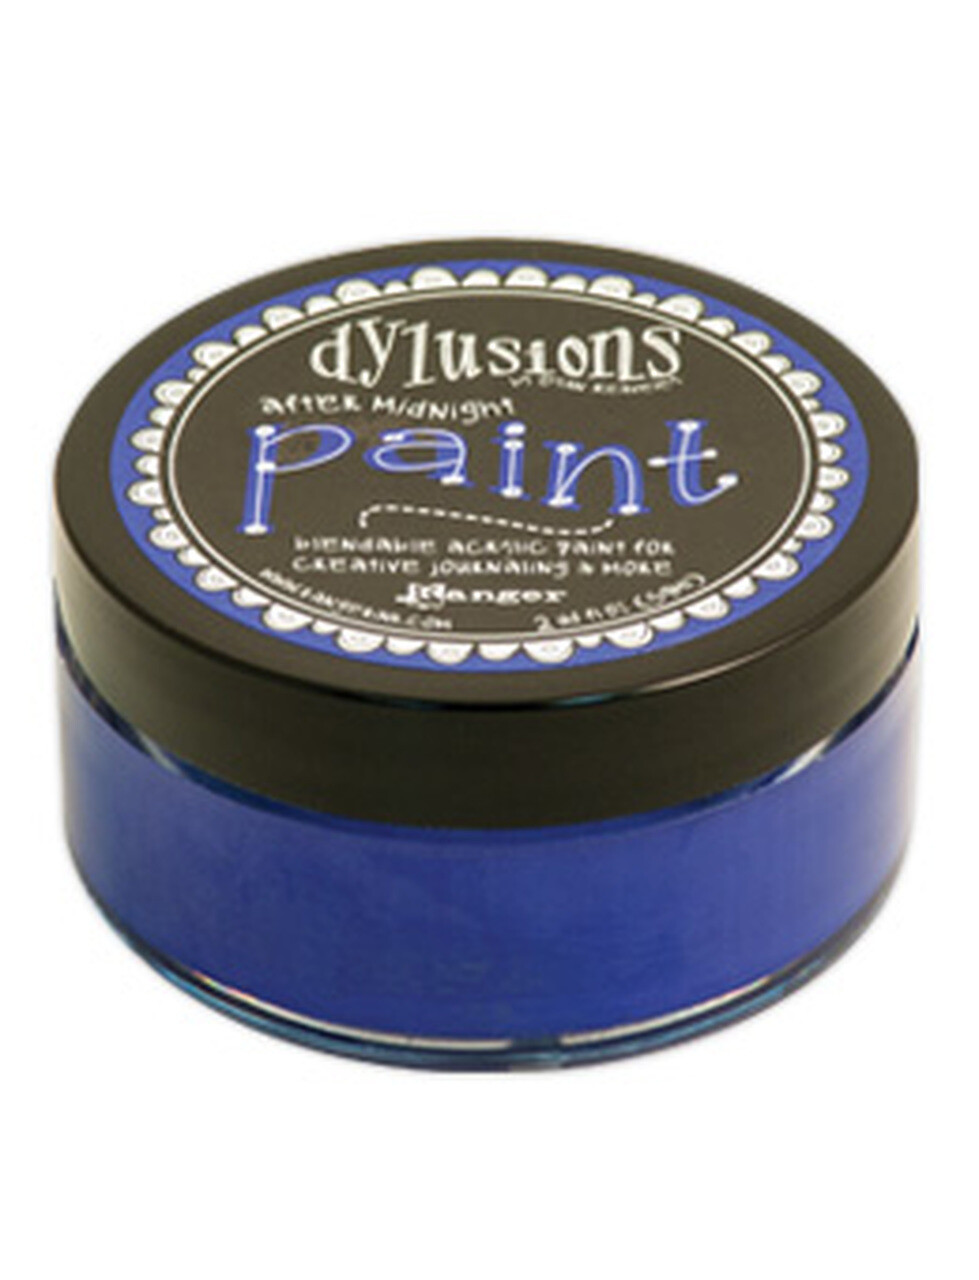 Dylusions Blendable Acrylic Paint 2oz - After Midnight